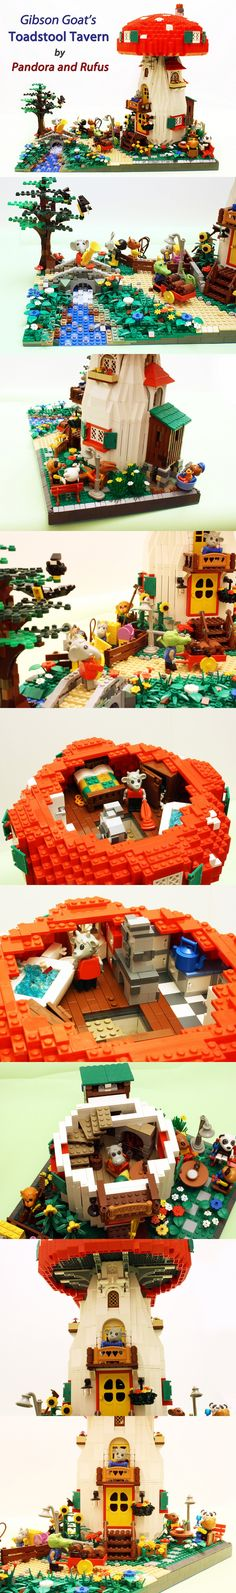 Gibson Goats Toadstool Tavern #LEGO #Fabuland #Tavern http://www.Adopt-A-Brick.com/